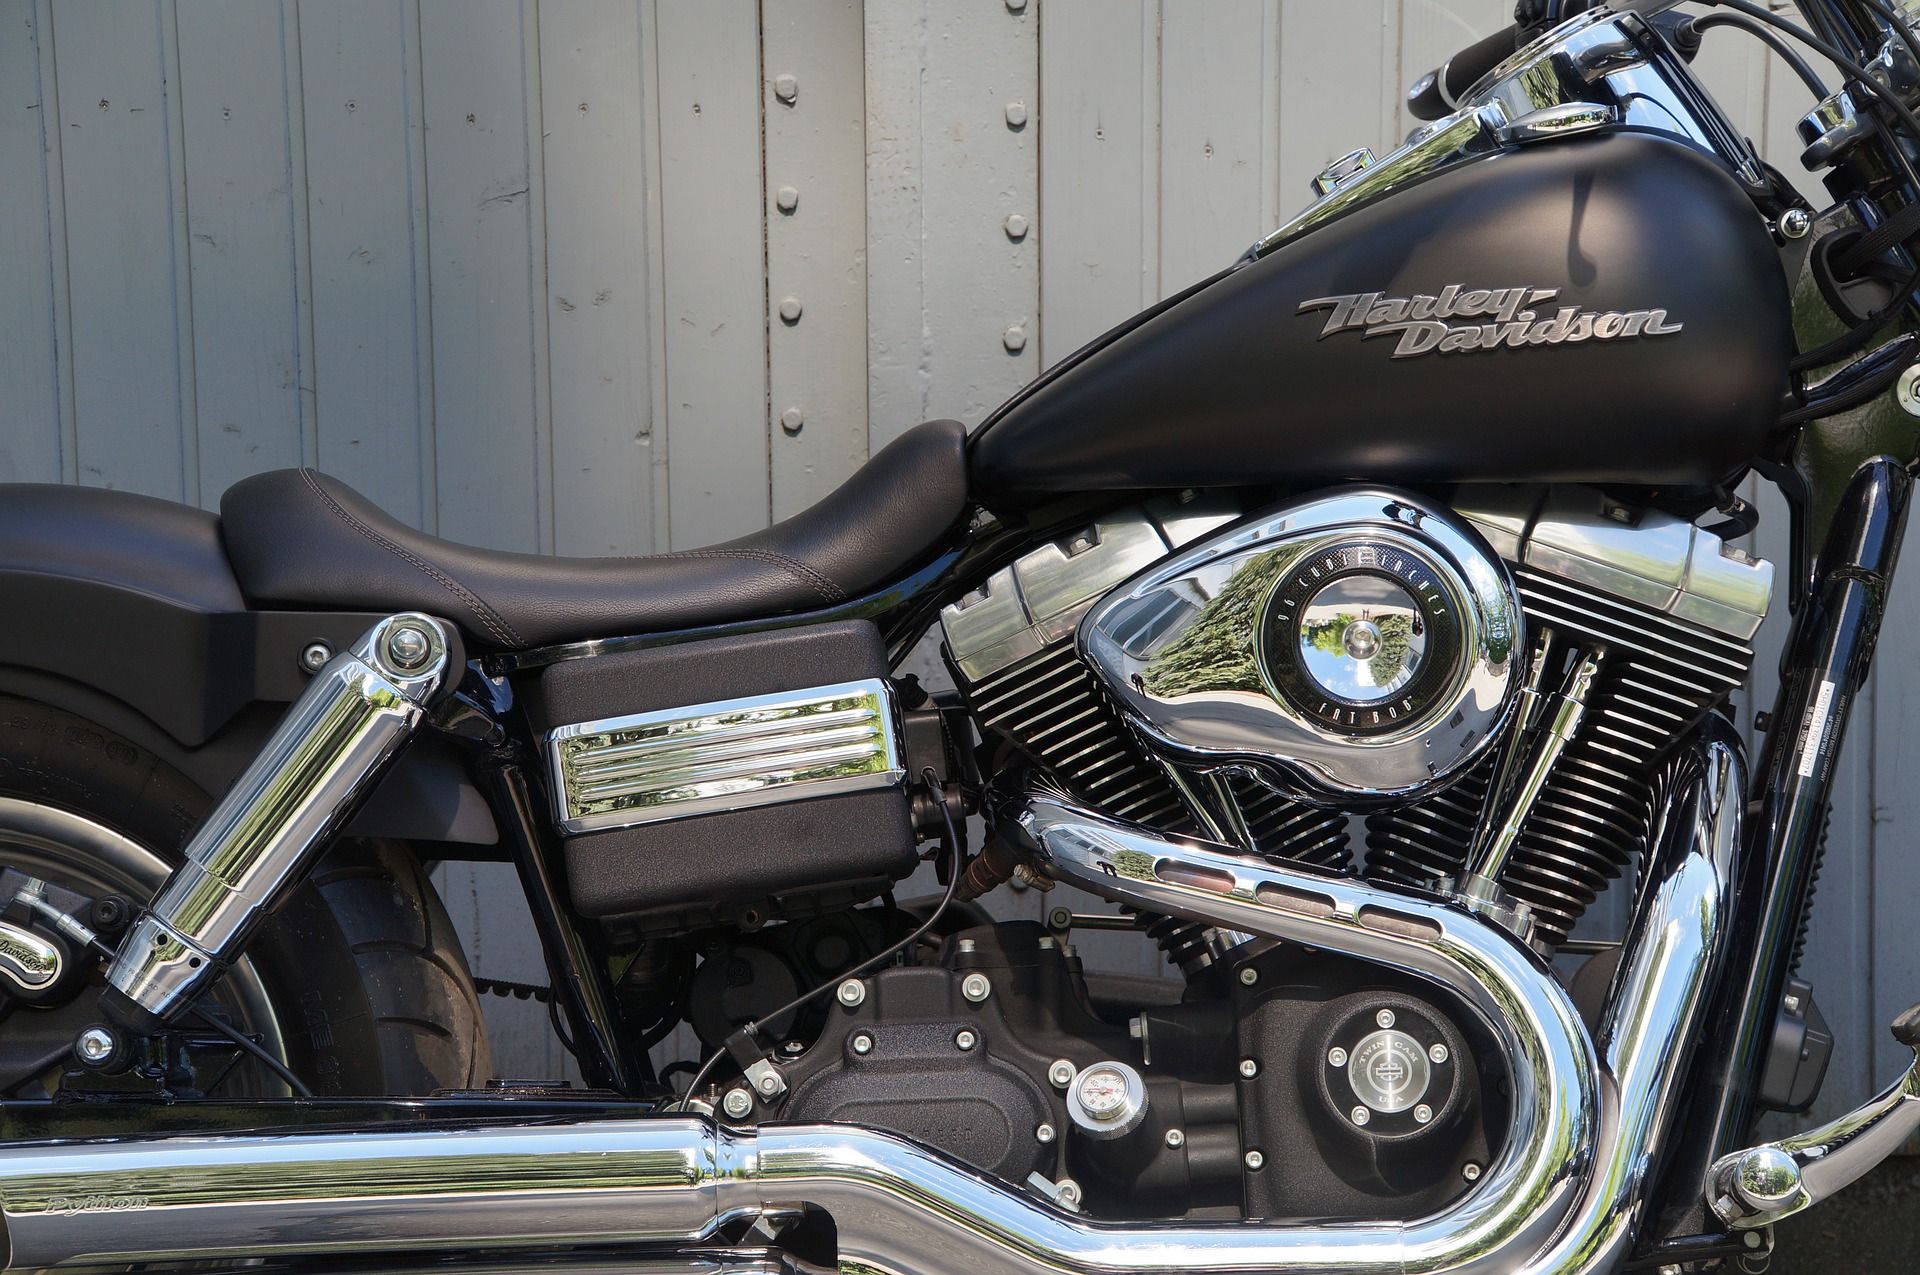 CA Motorcycle Insurance - Online Motorcycle Insurance Quotes